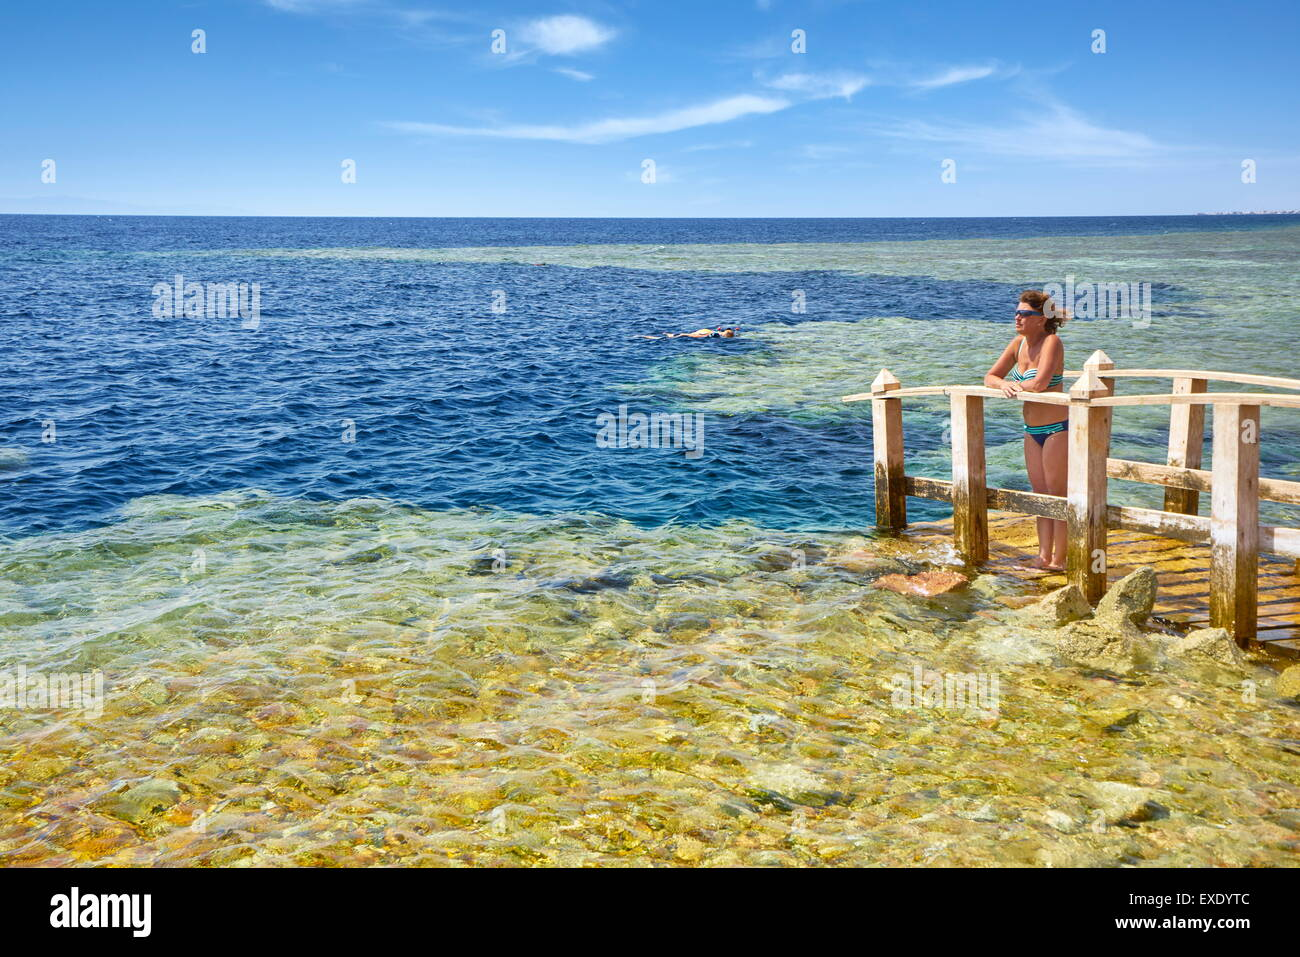 Woman on the platform,going down to the Blue Hole, Dahab, Red Sea, Egypt - Stock Image